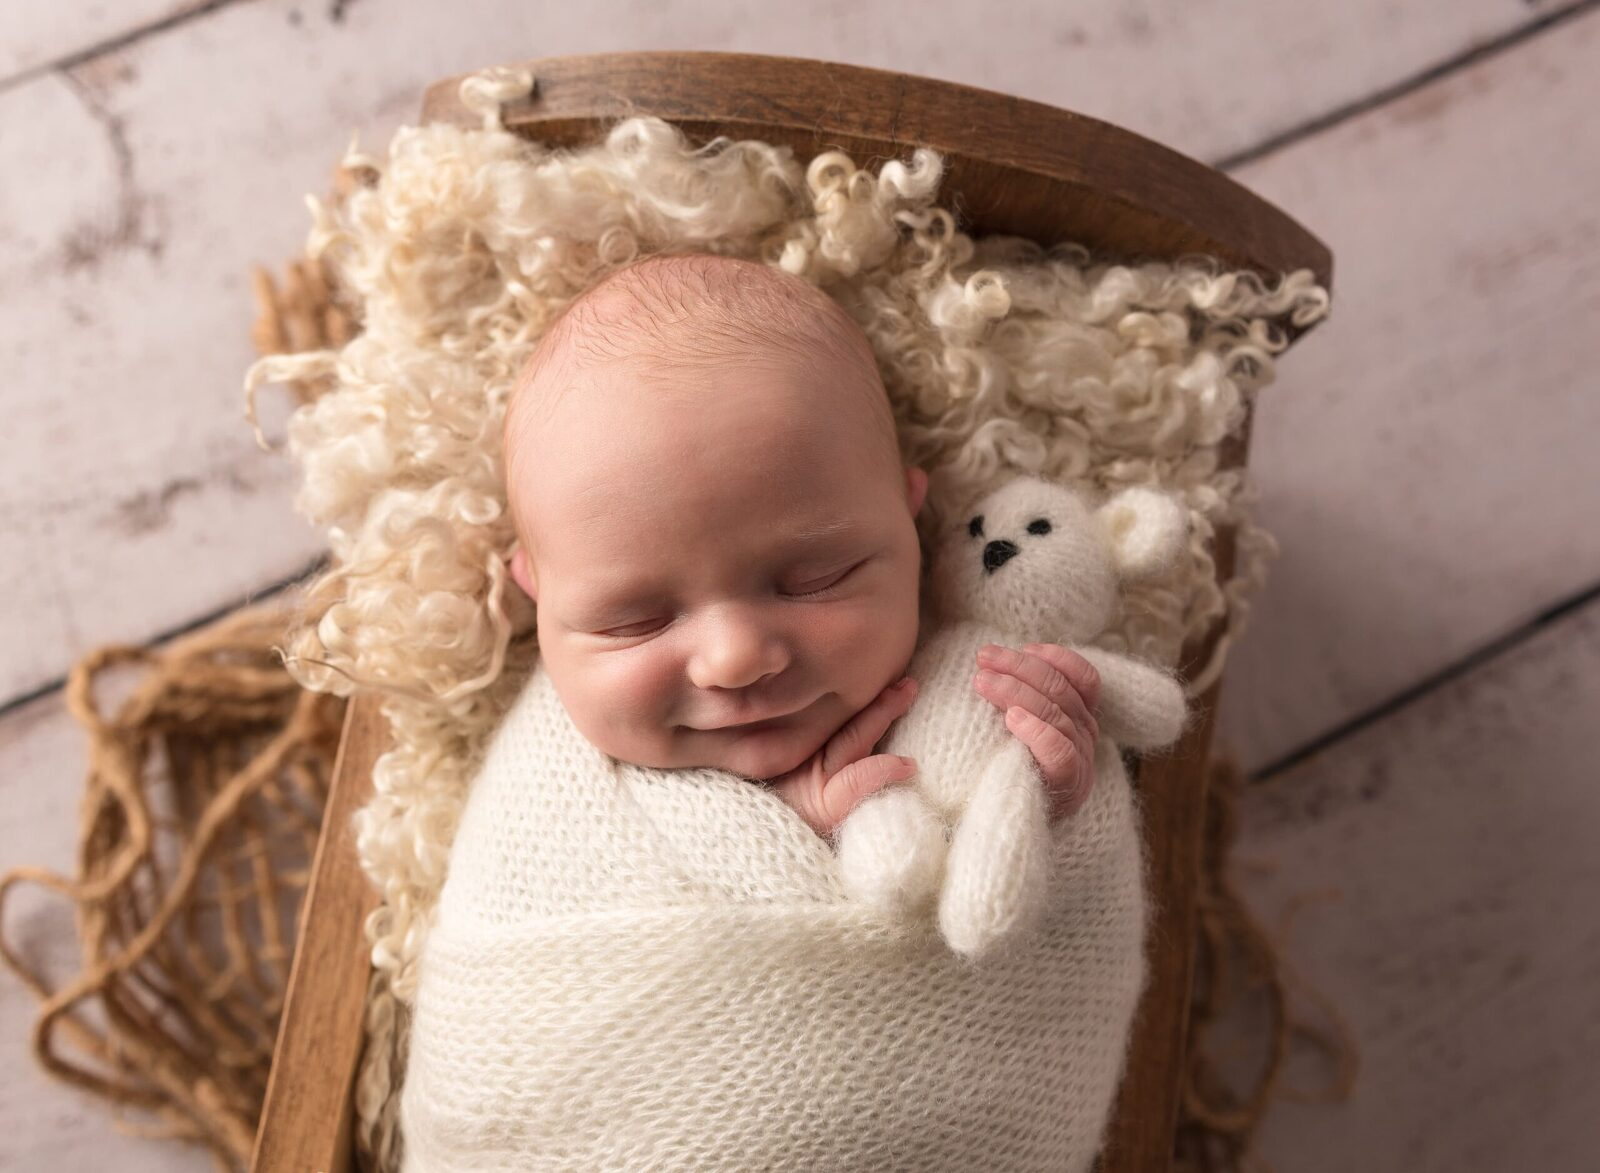 newborn baby boy in wooden cradle with white bear lovie